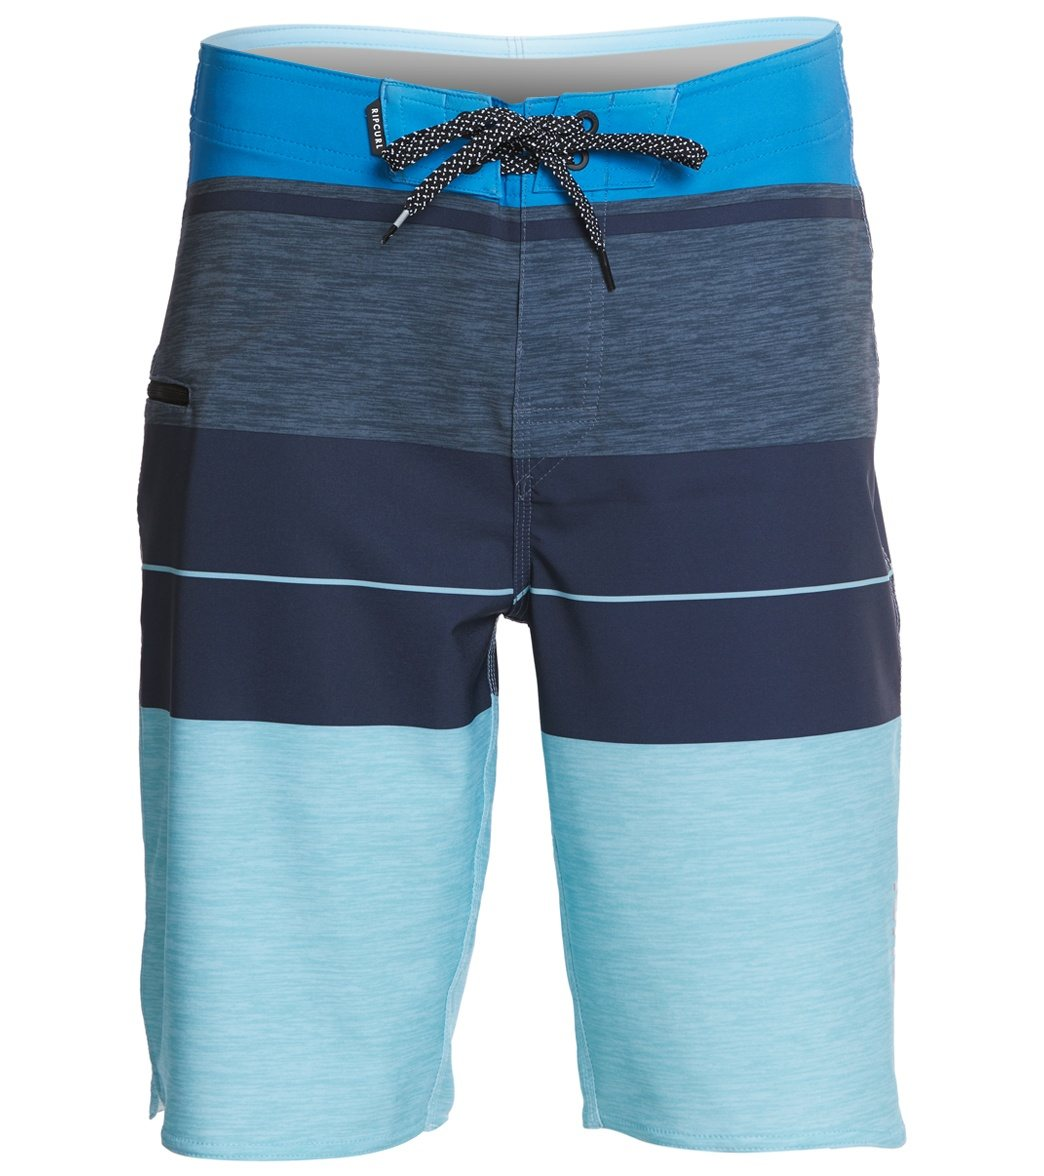 0f7ccd458f Rip Curl Men's Mirage Eclipse Boardshort at SwimOutlet.com - Free Shipping